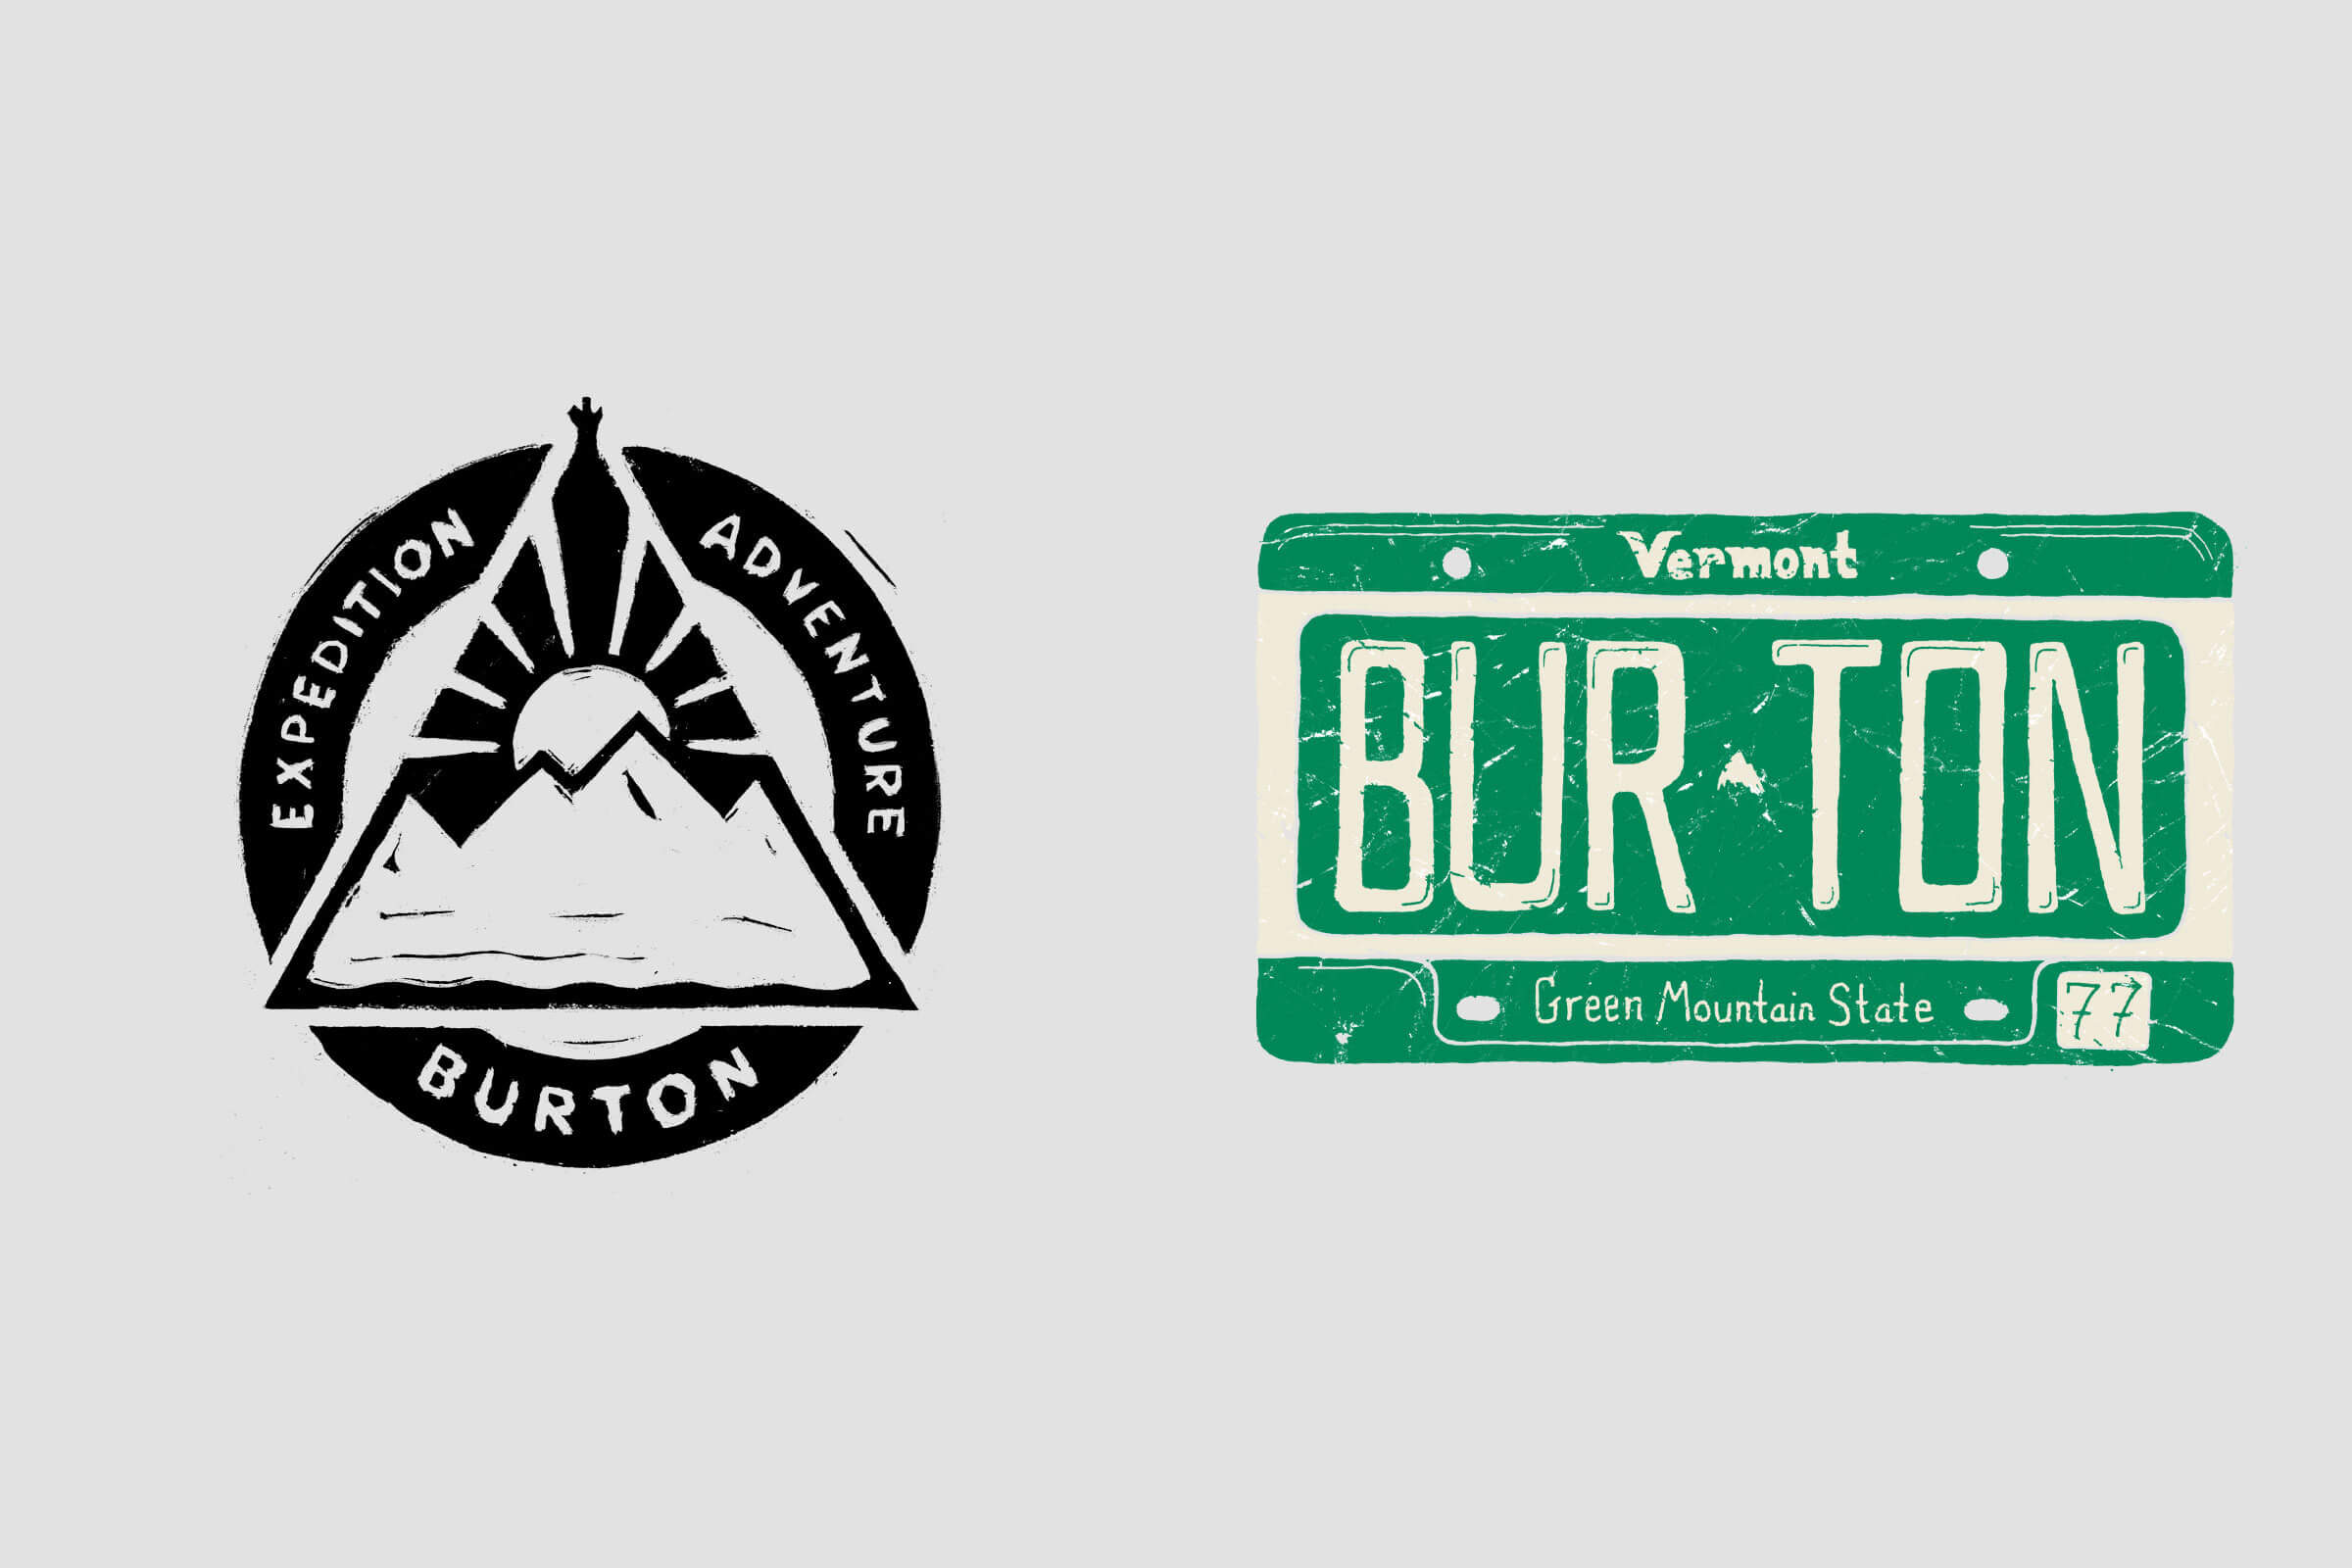 BURTON_GRAPHICS_2_2400x1600